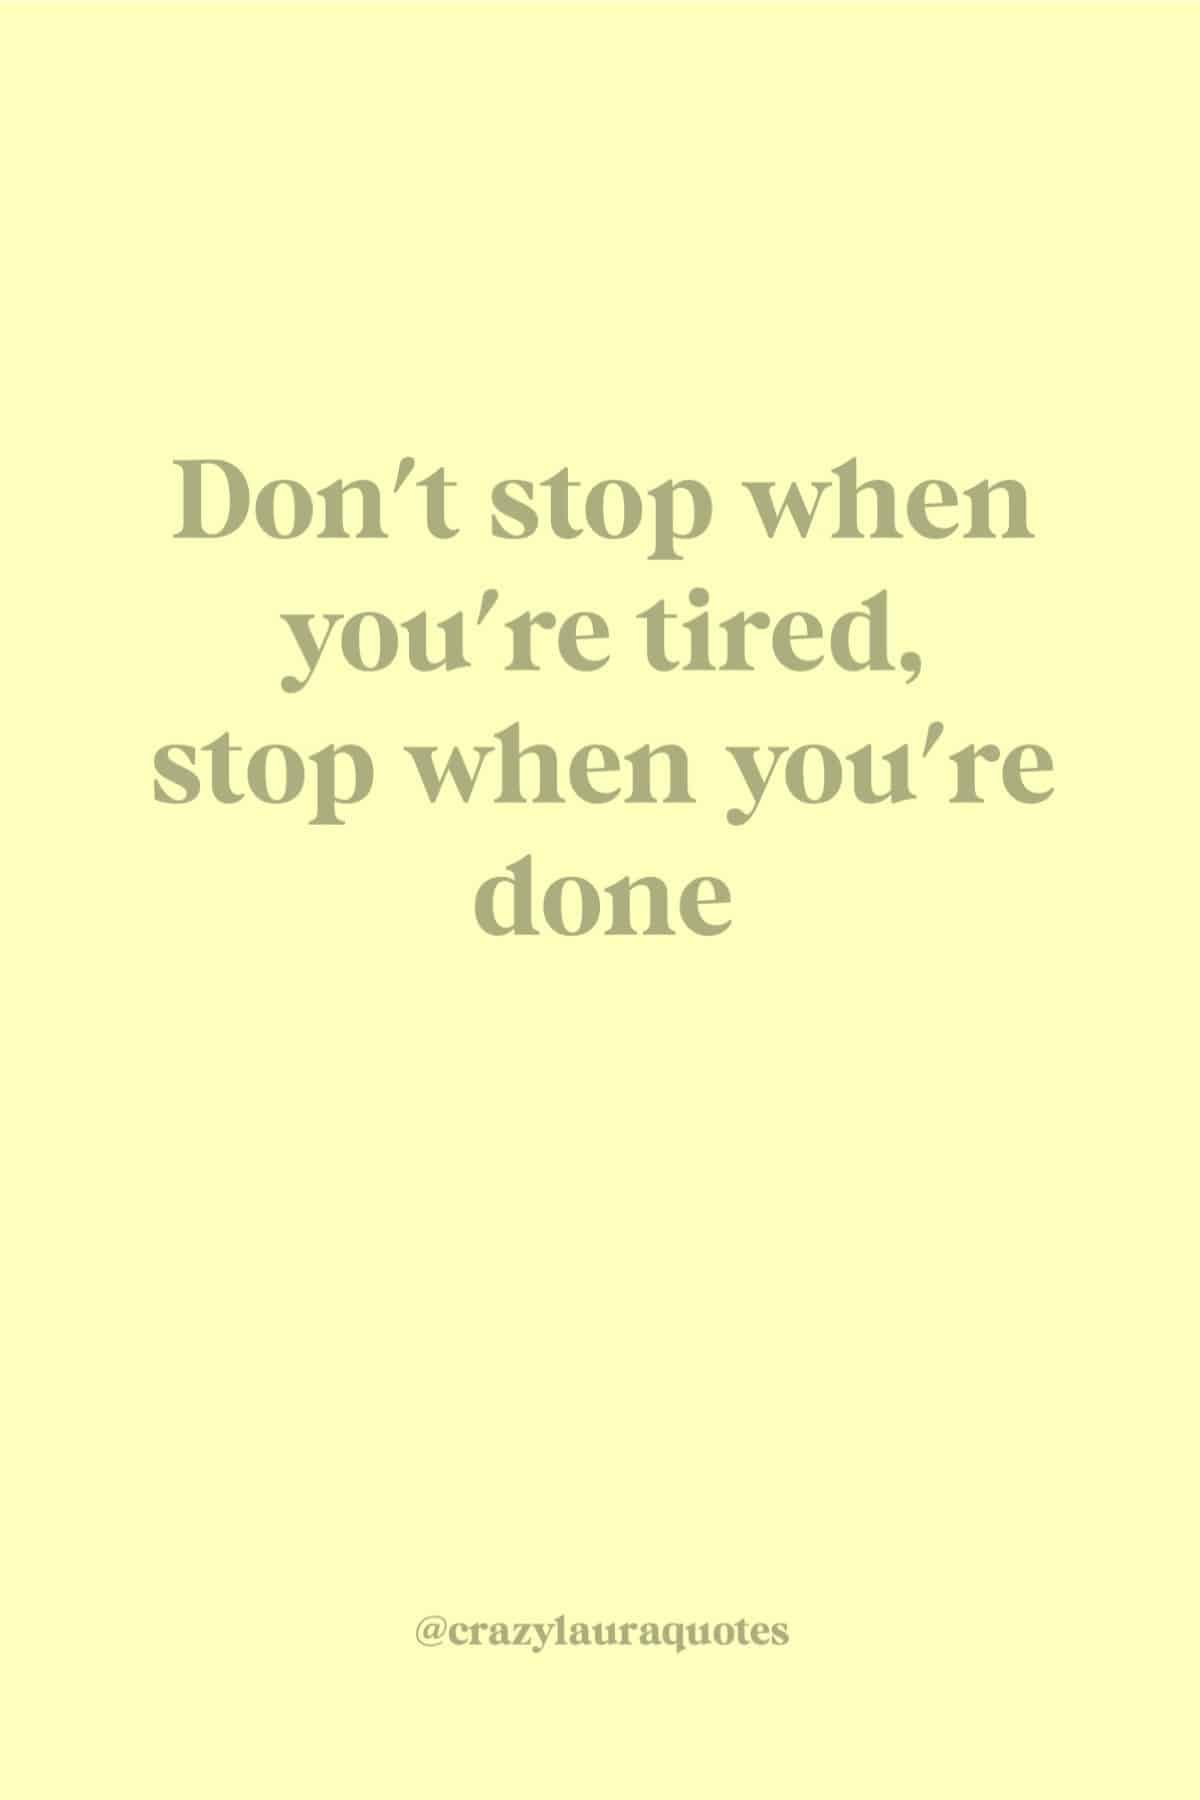 don't stop motivational fitness saying